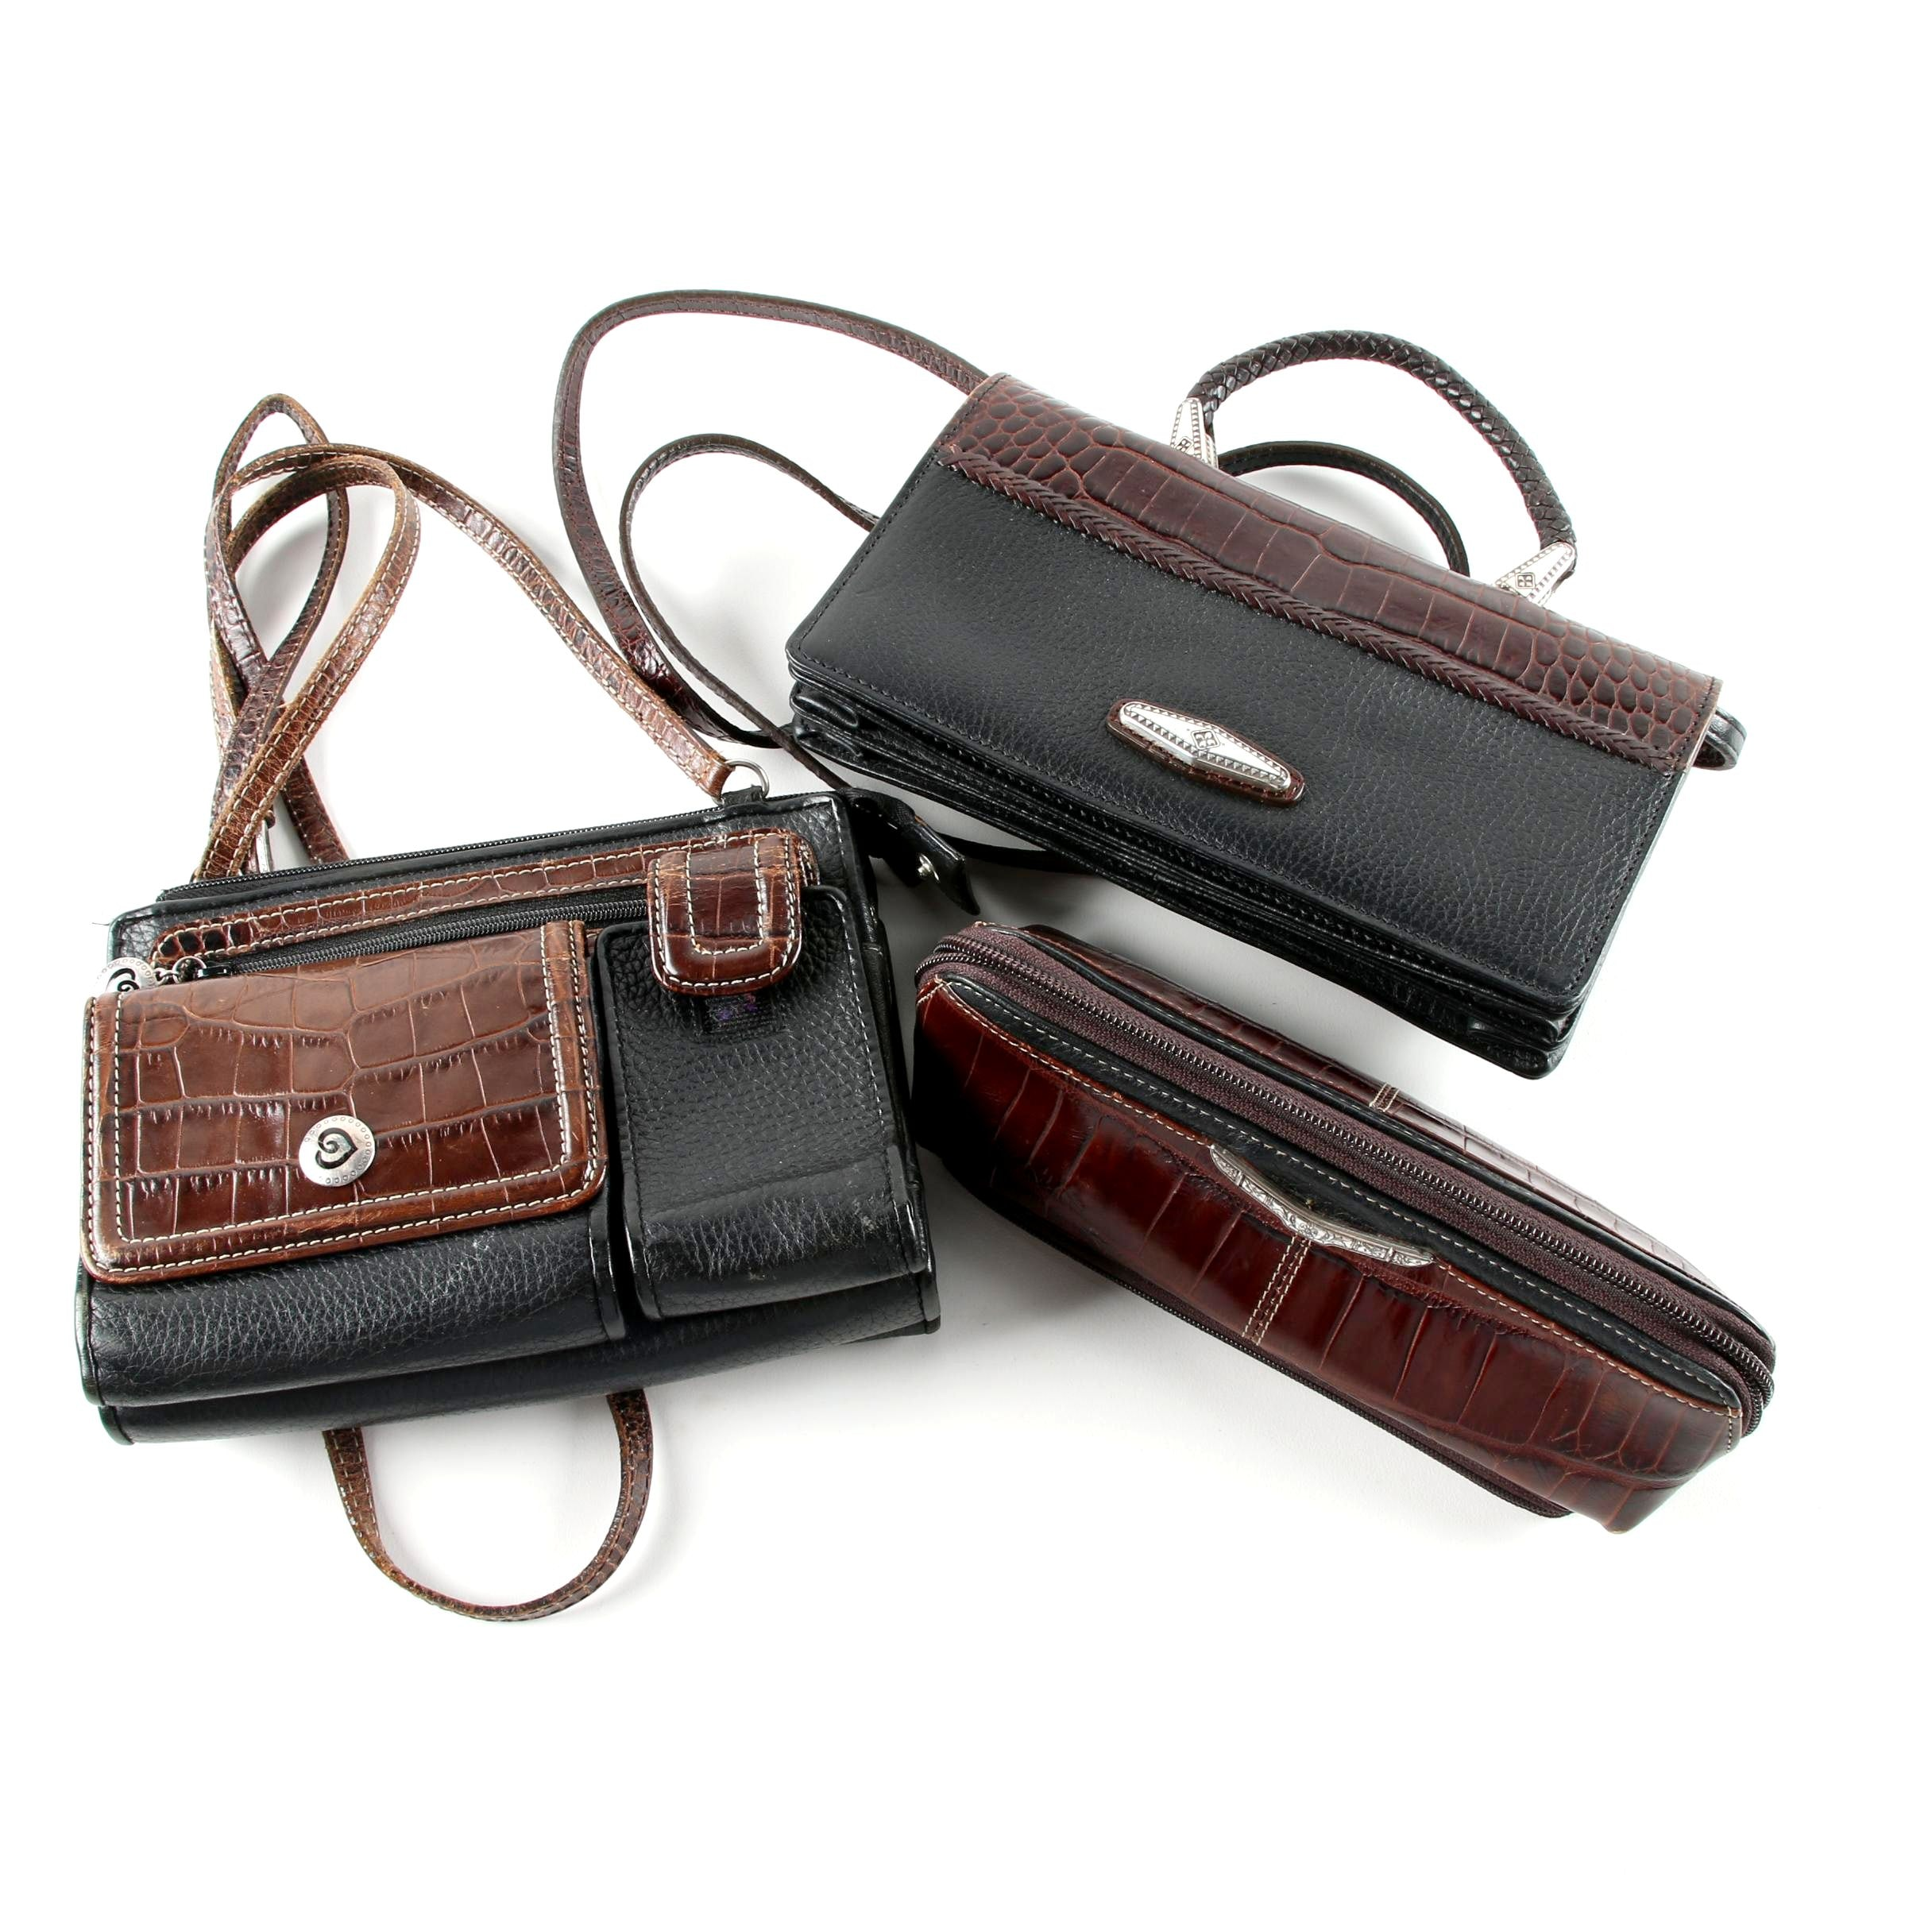 Brighton Black and Brown Leather Handbags and Clutch Wallet